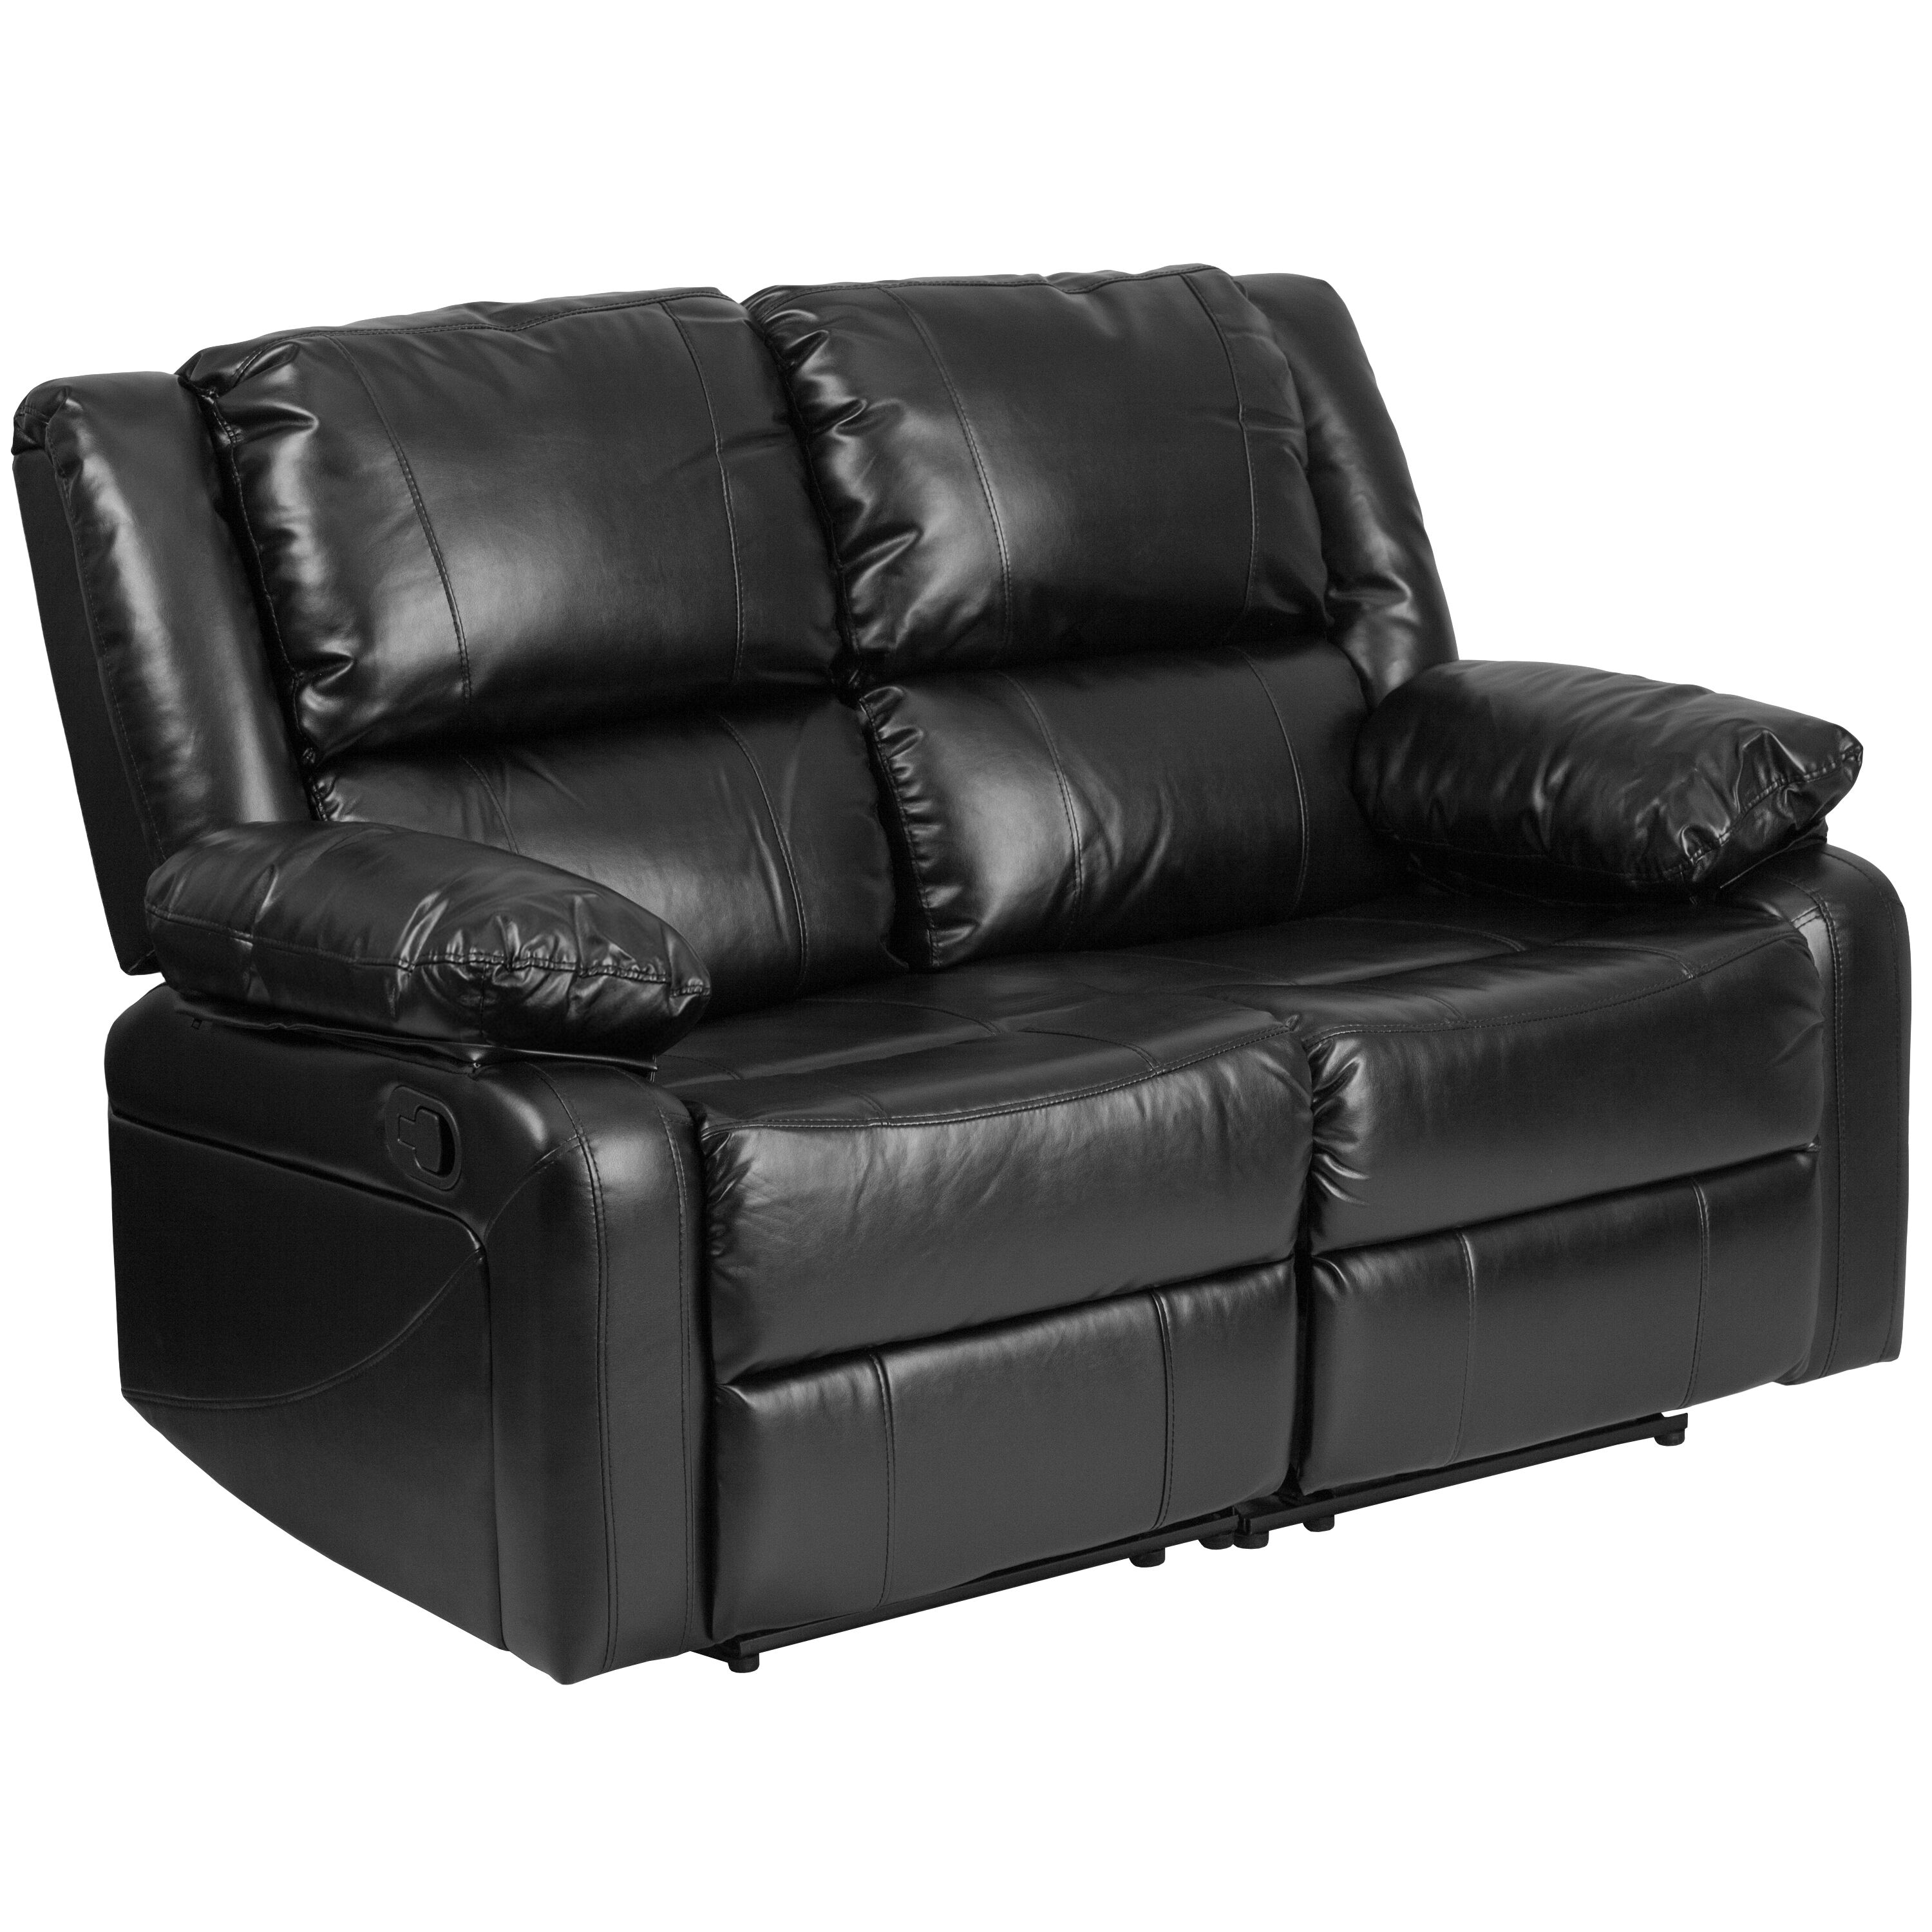 harmony series black leather loveseat with two builtin recliners